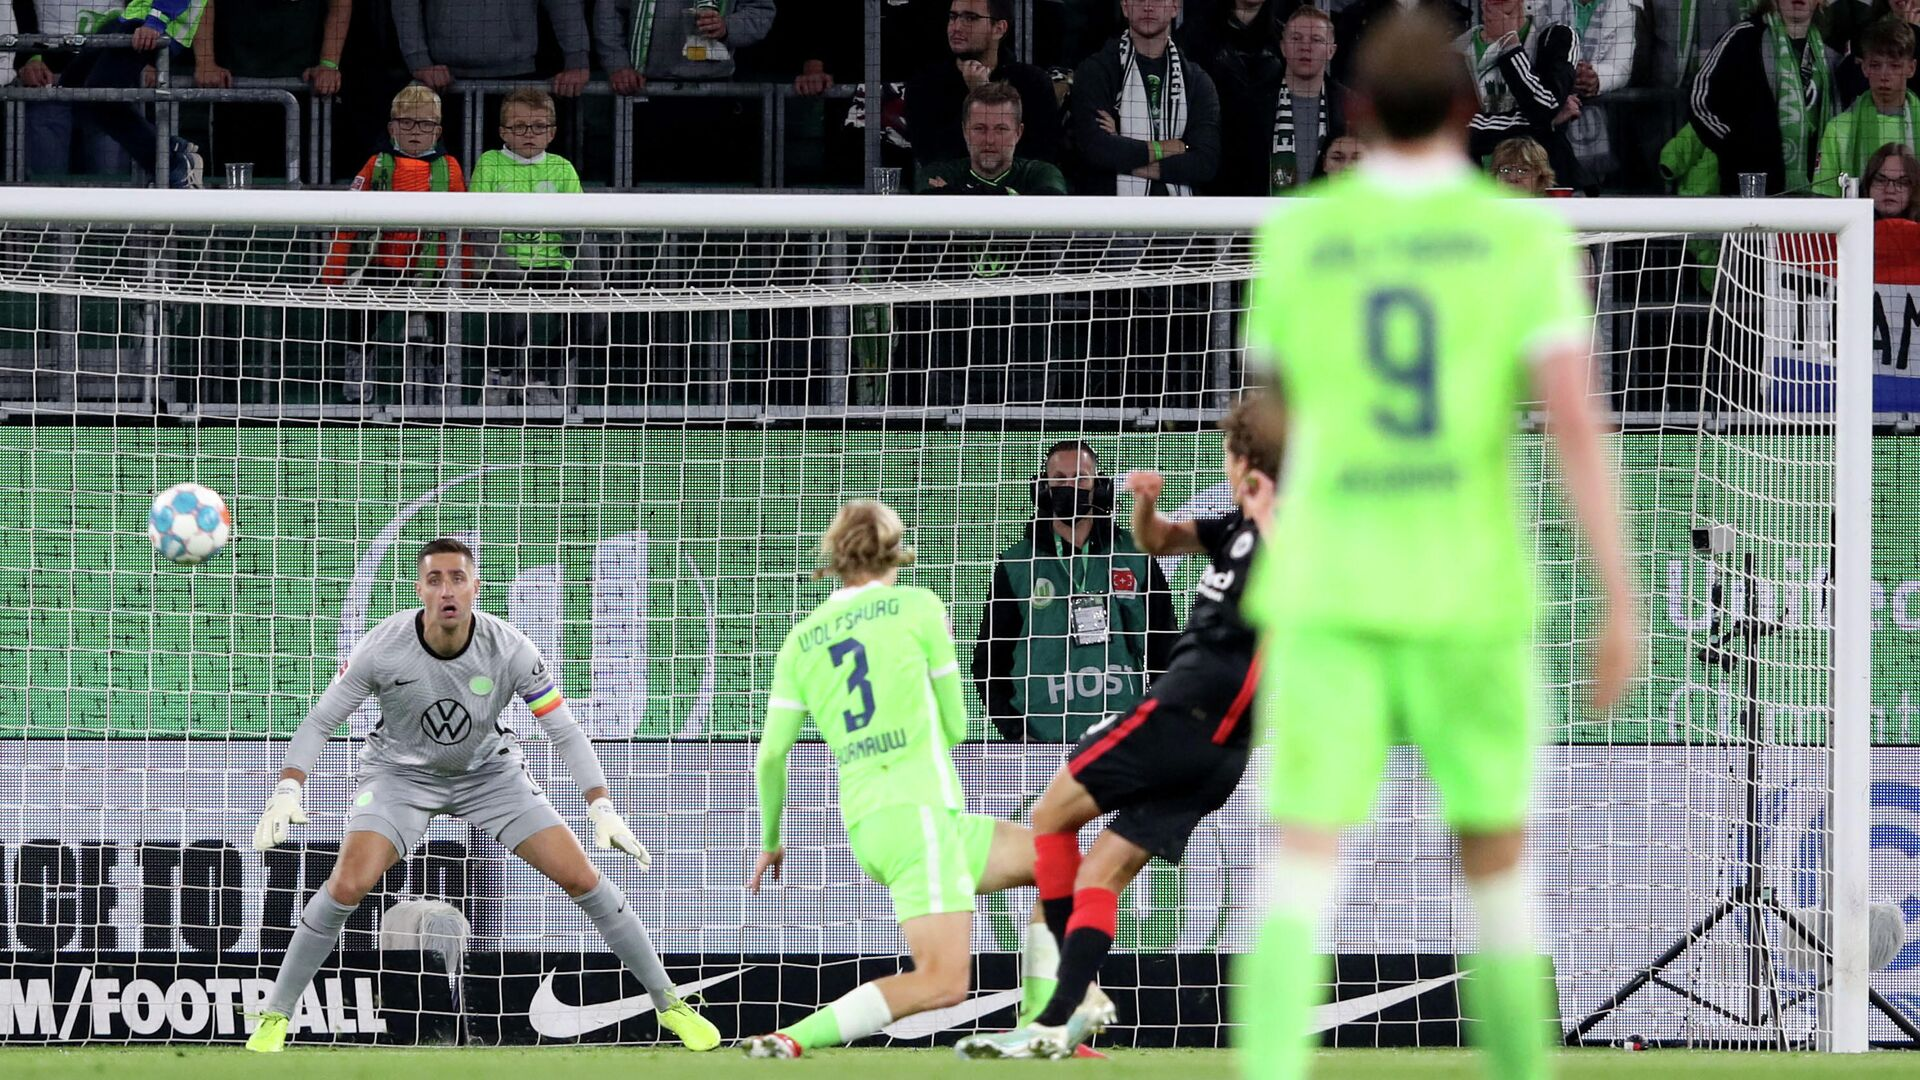 Frankfurt's Dutch midfielder Sam Lammers (2nd R, hidden) scores the 0-1 during the German First division Bundesliga football match VfL Wolfsburg vs Eintracht Frankfurt on September 19, 2021 in Wolfsburg, northern Germany. (Photo by Ronny HARTMANN / AFP) / DFL REGULATIONS PROHIBIT ANY USE OF PHOTOGRAPHS AS IMAGE SEQUENCES AND/OR QUASI-VIDEO - РИА Новости, 1920, 19.09.2021